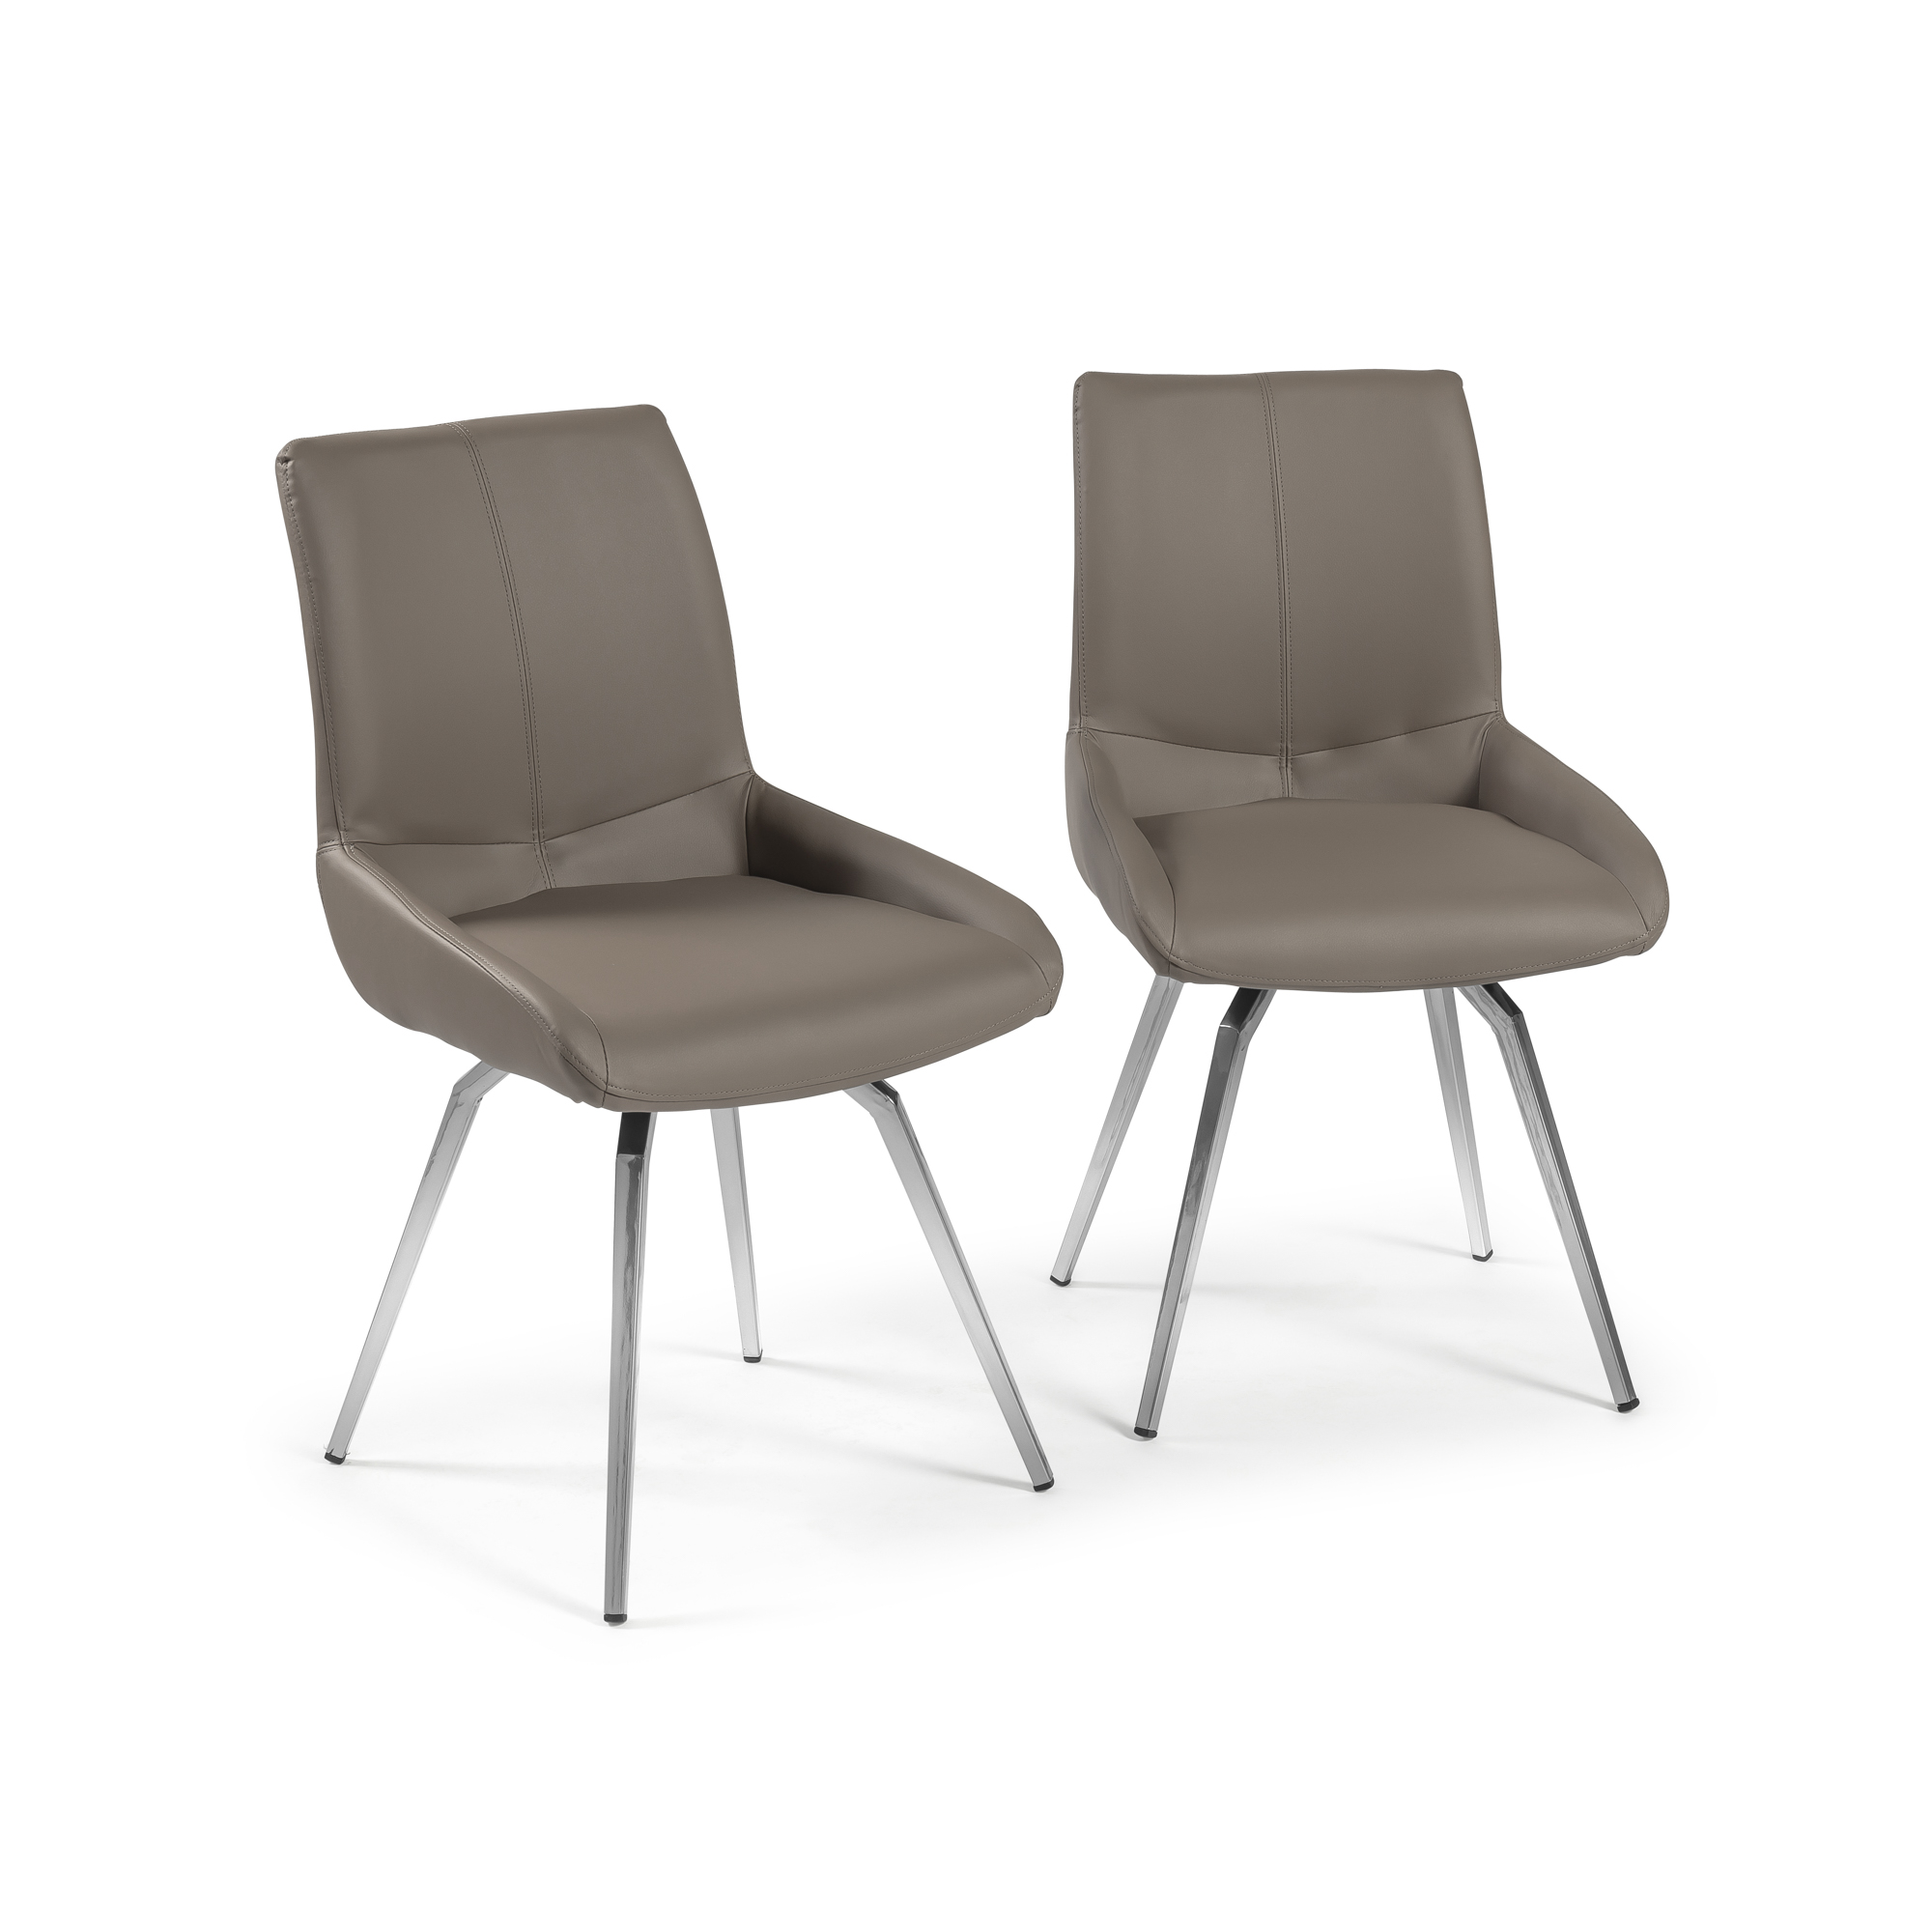 Taupe Swivel Dining Chair (Set of 2)